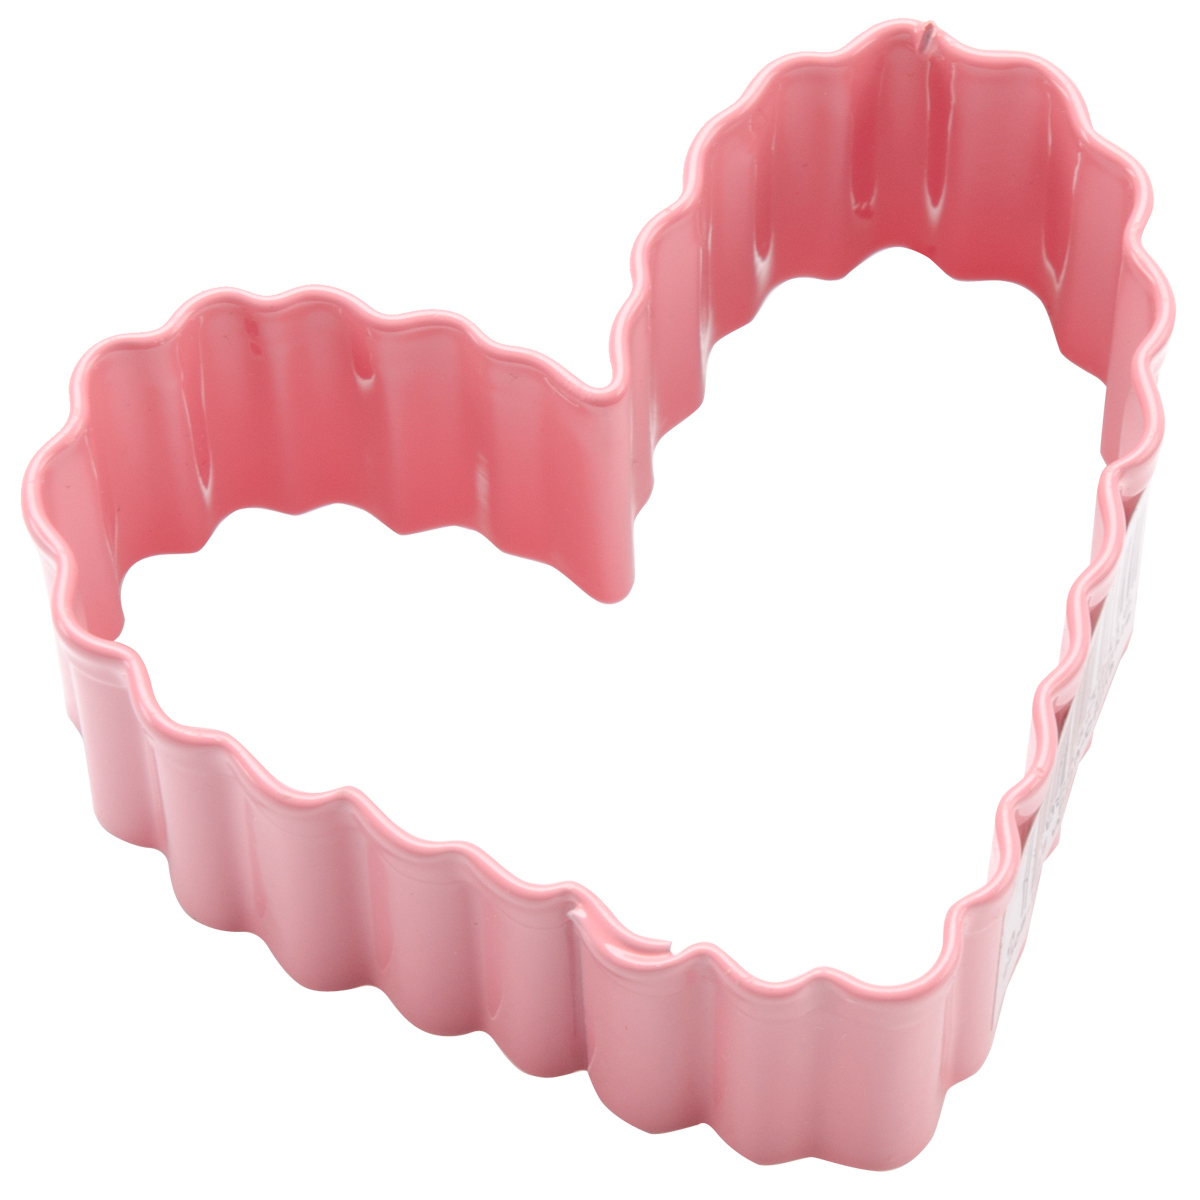 Metal Cookie Cutter 3 Inch-Pink/Small Crinkle Heart